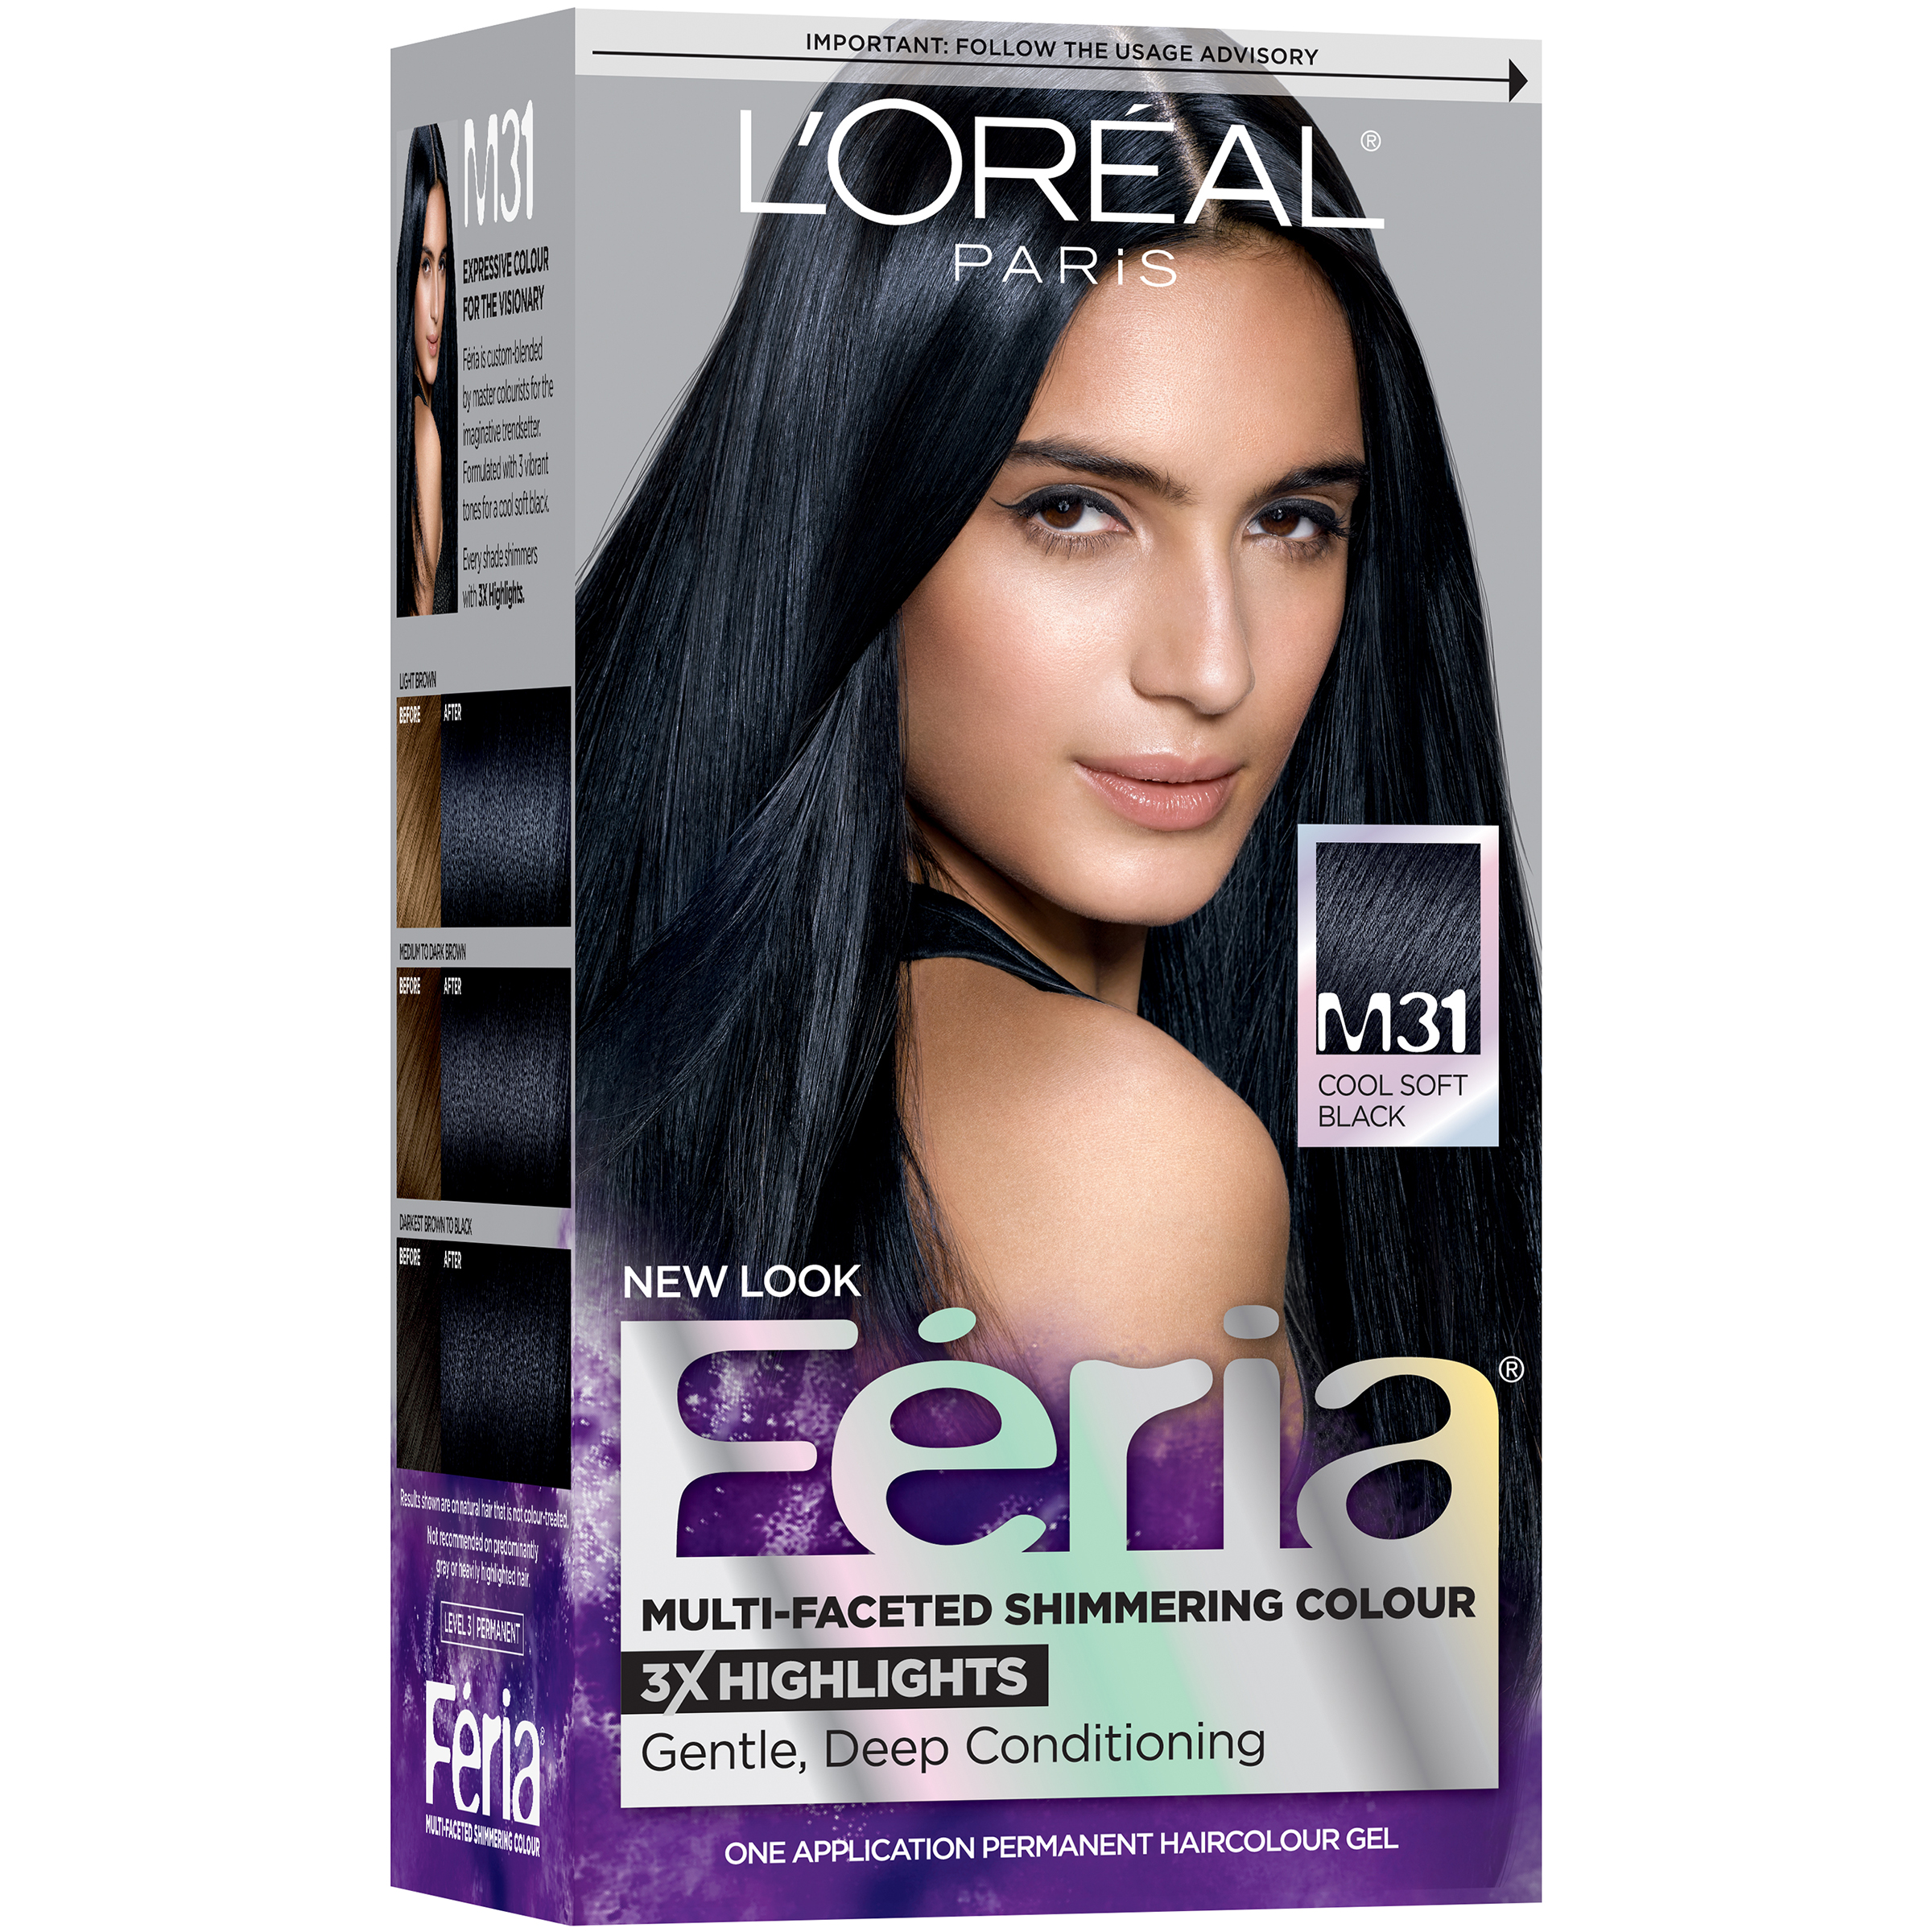 LOreal Paris Feria Multi Faceted Shimmering Colour Hair